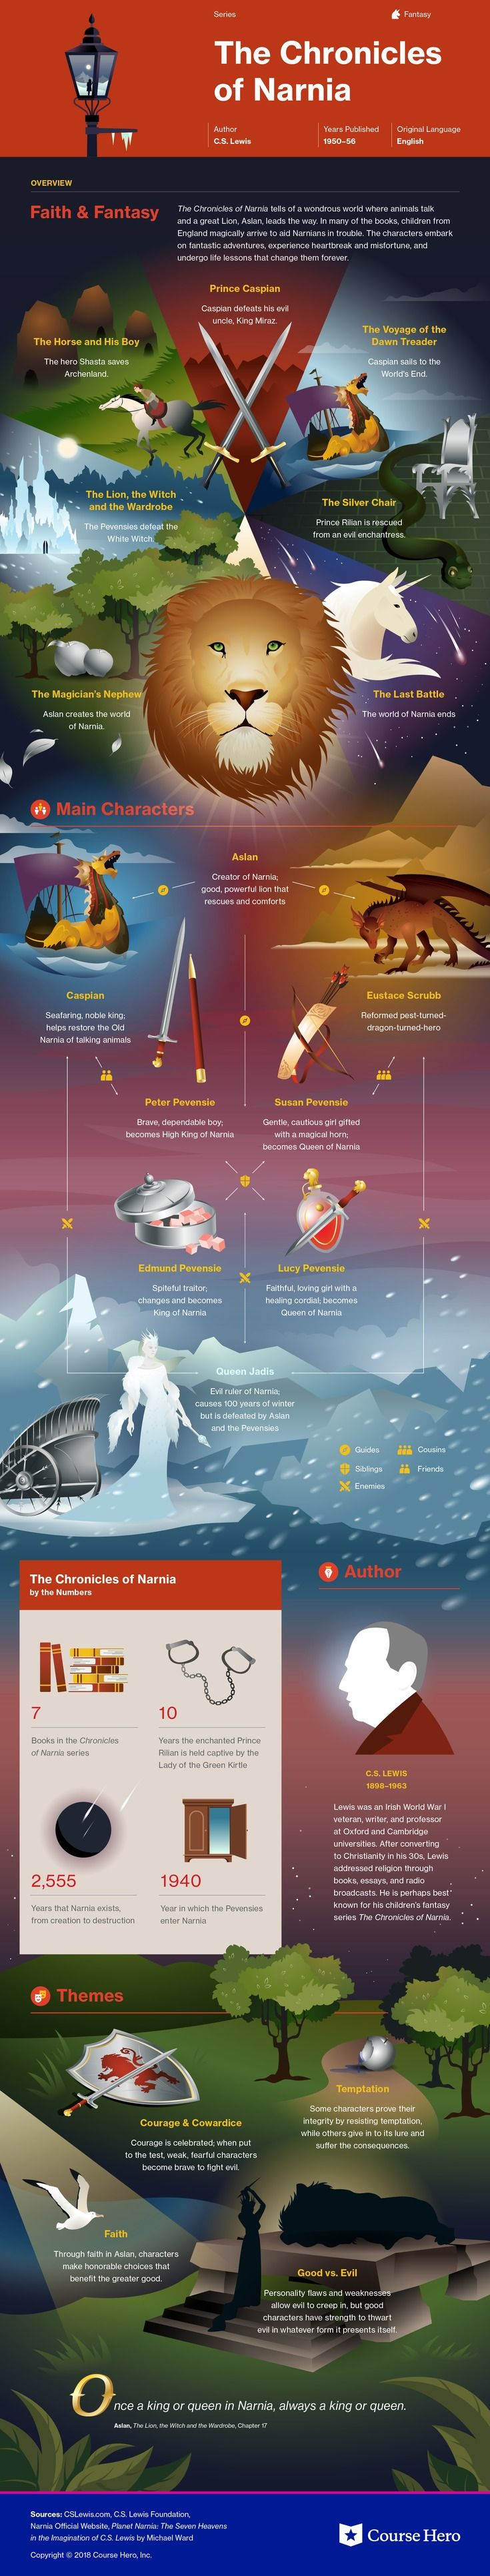 This @CourseHero infographic on The Chronicles of Narnia (Series) is both visually stunning and informative!